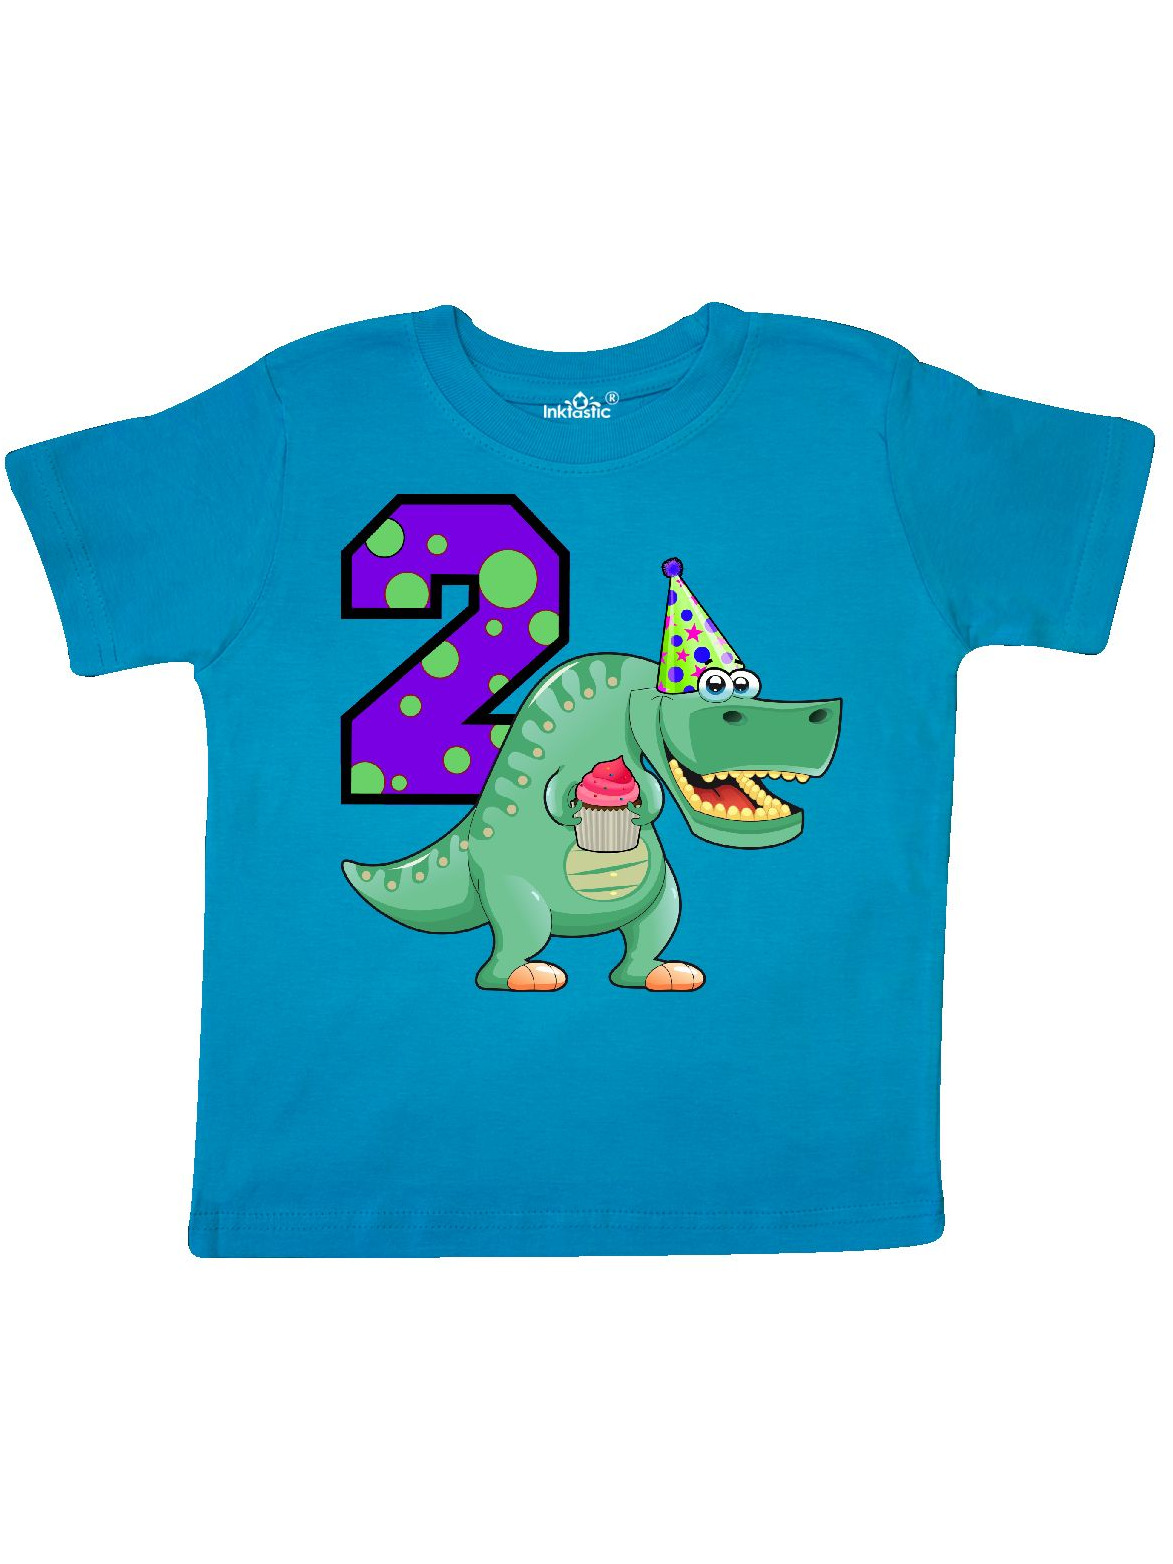 2nd Birthday T Rex Toddler Shirt